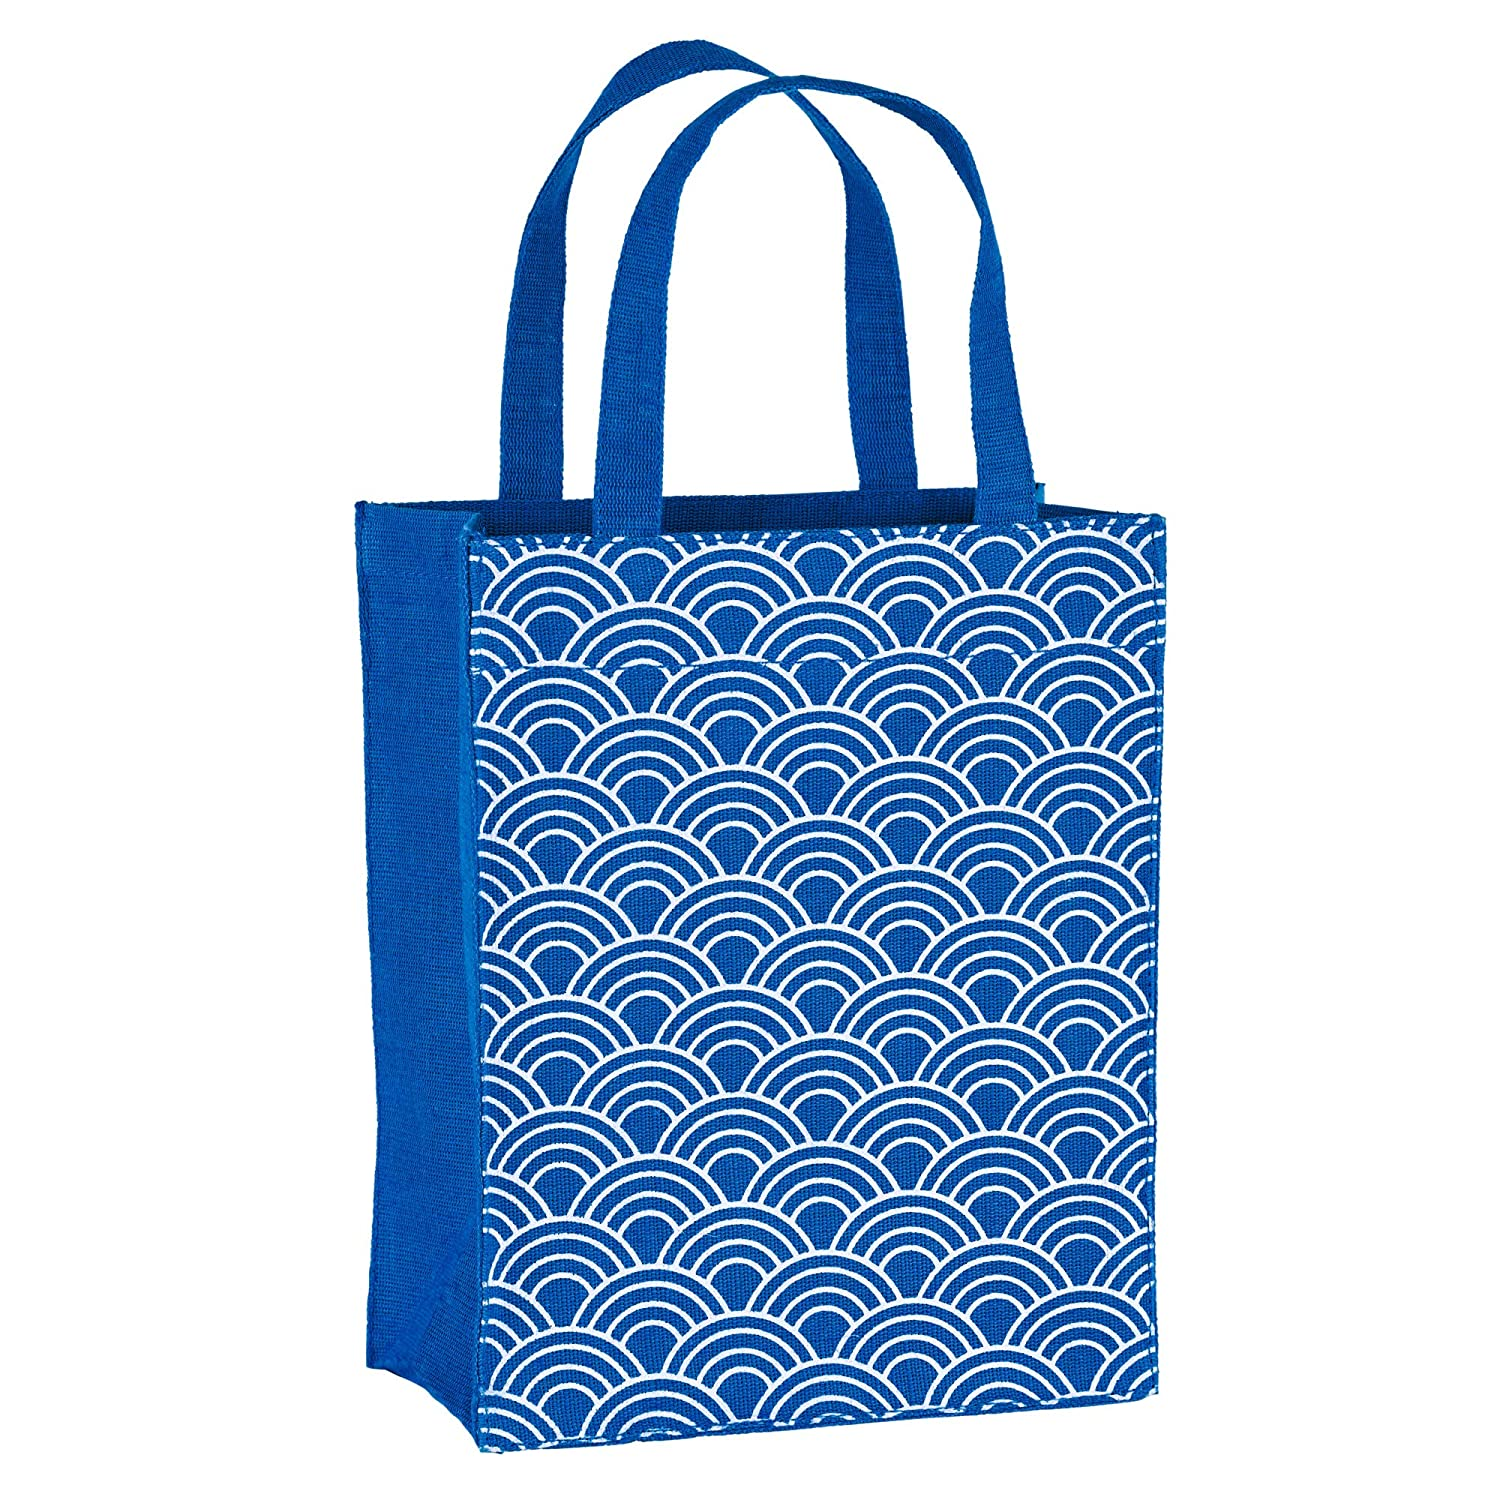 Illumen Reusable Fabric Gift Bags with Handles: Single Fabric Bag: Unique Small and Eco Friendly